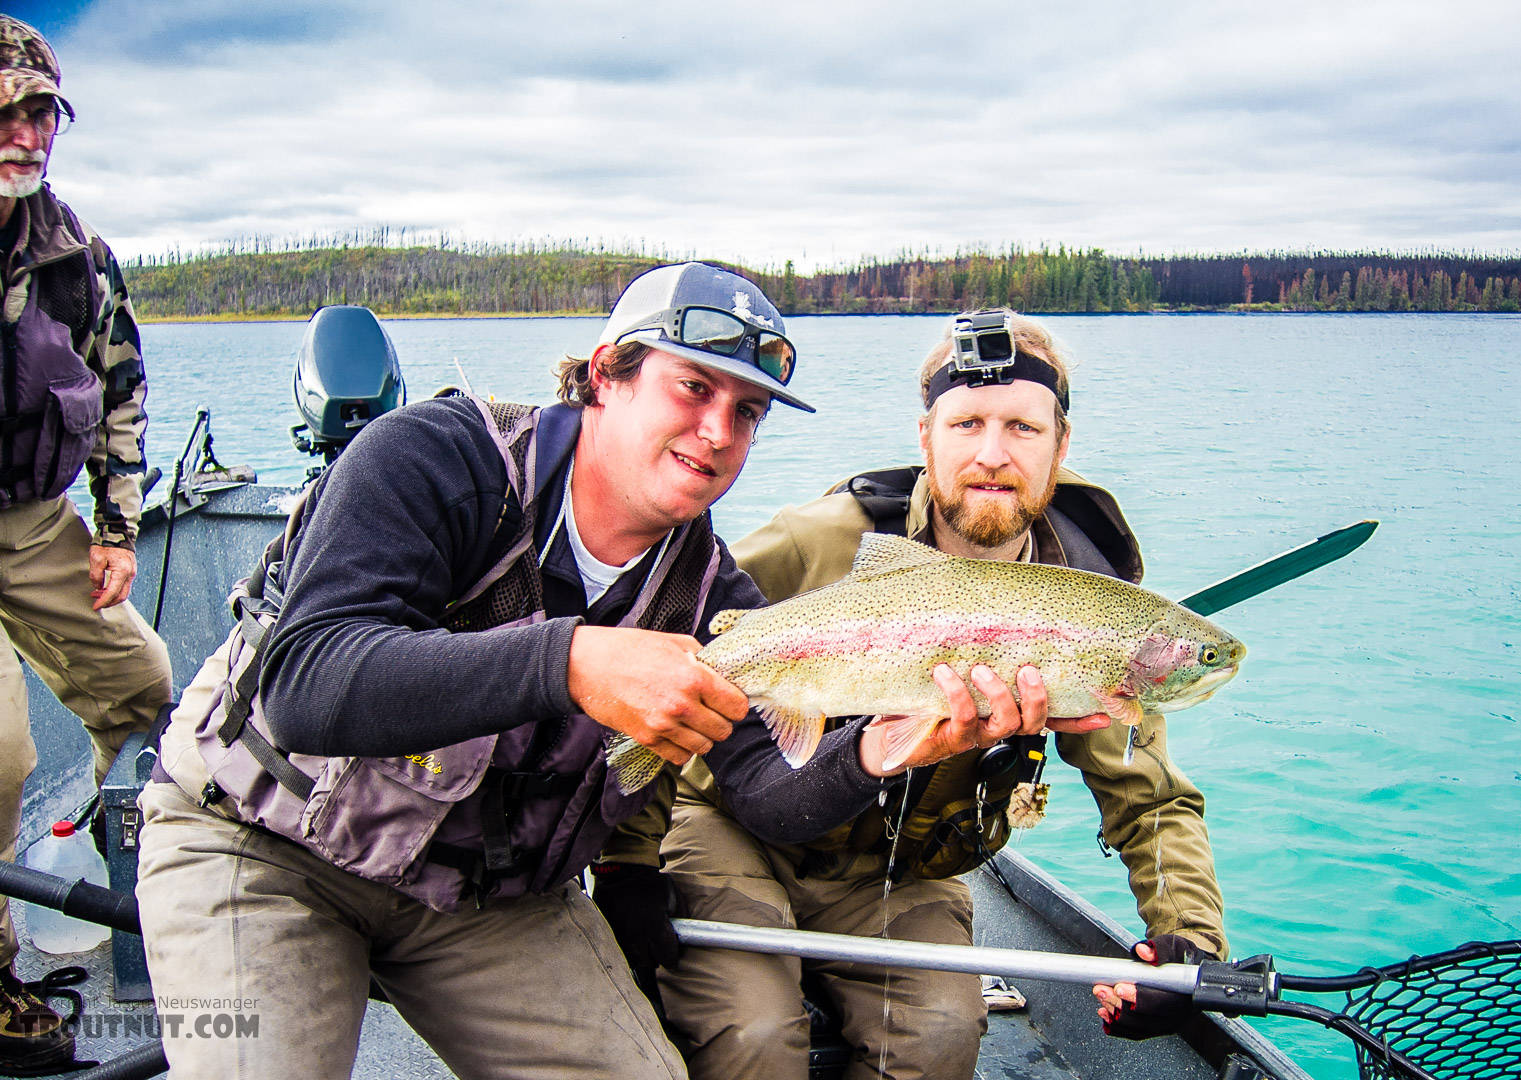 """Big rainbow (estimated 25"""") in the middle Kenai River. Our drift boat guide (Jeff from Alaska Troutfitters) had a policy that he holds the fish instead of the clients, which felt weird to me but is completely understandable given the diverse clientele and the amount of pressure on these fish. Mishandling by inexperienced clients could add up to a lot of mortality. From the Kenai River in Alaska."""